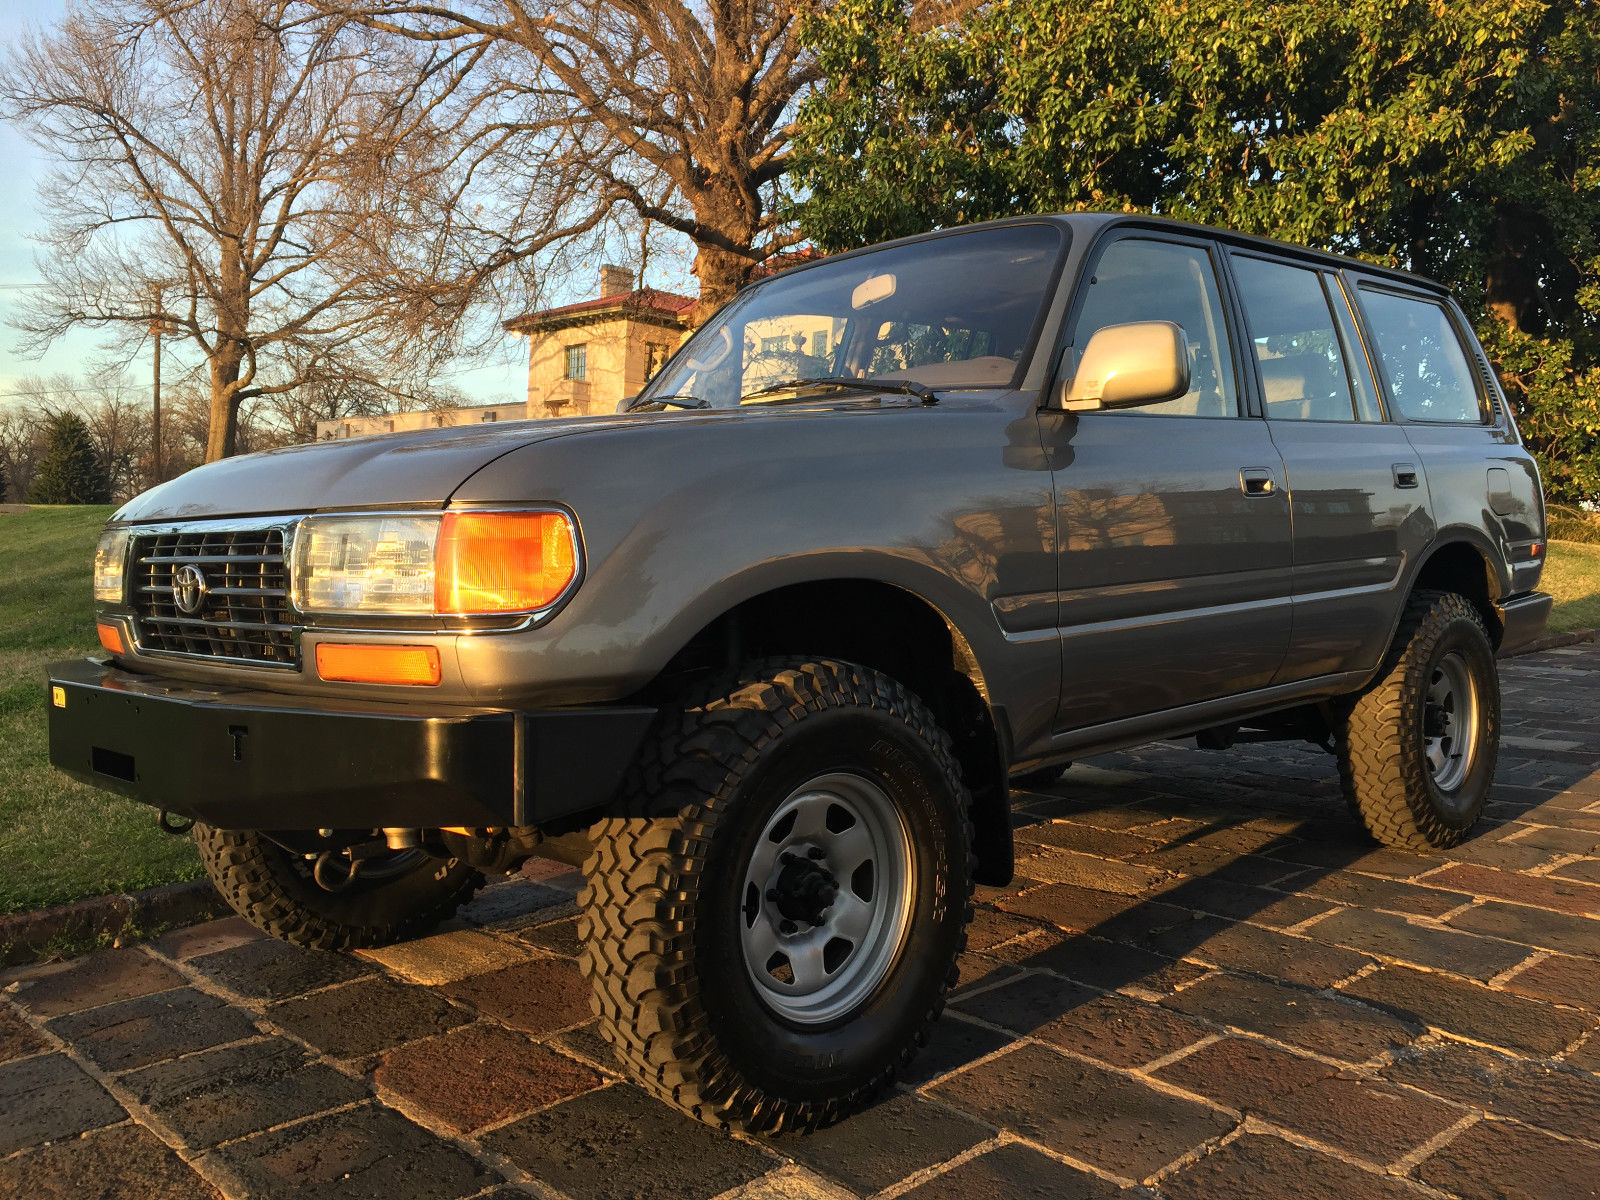 Toyota Land Cruiser Rare Poverty Pack 1997 FZJ80 Series ...